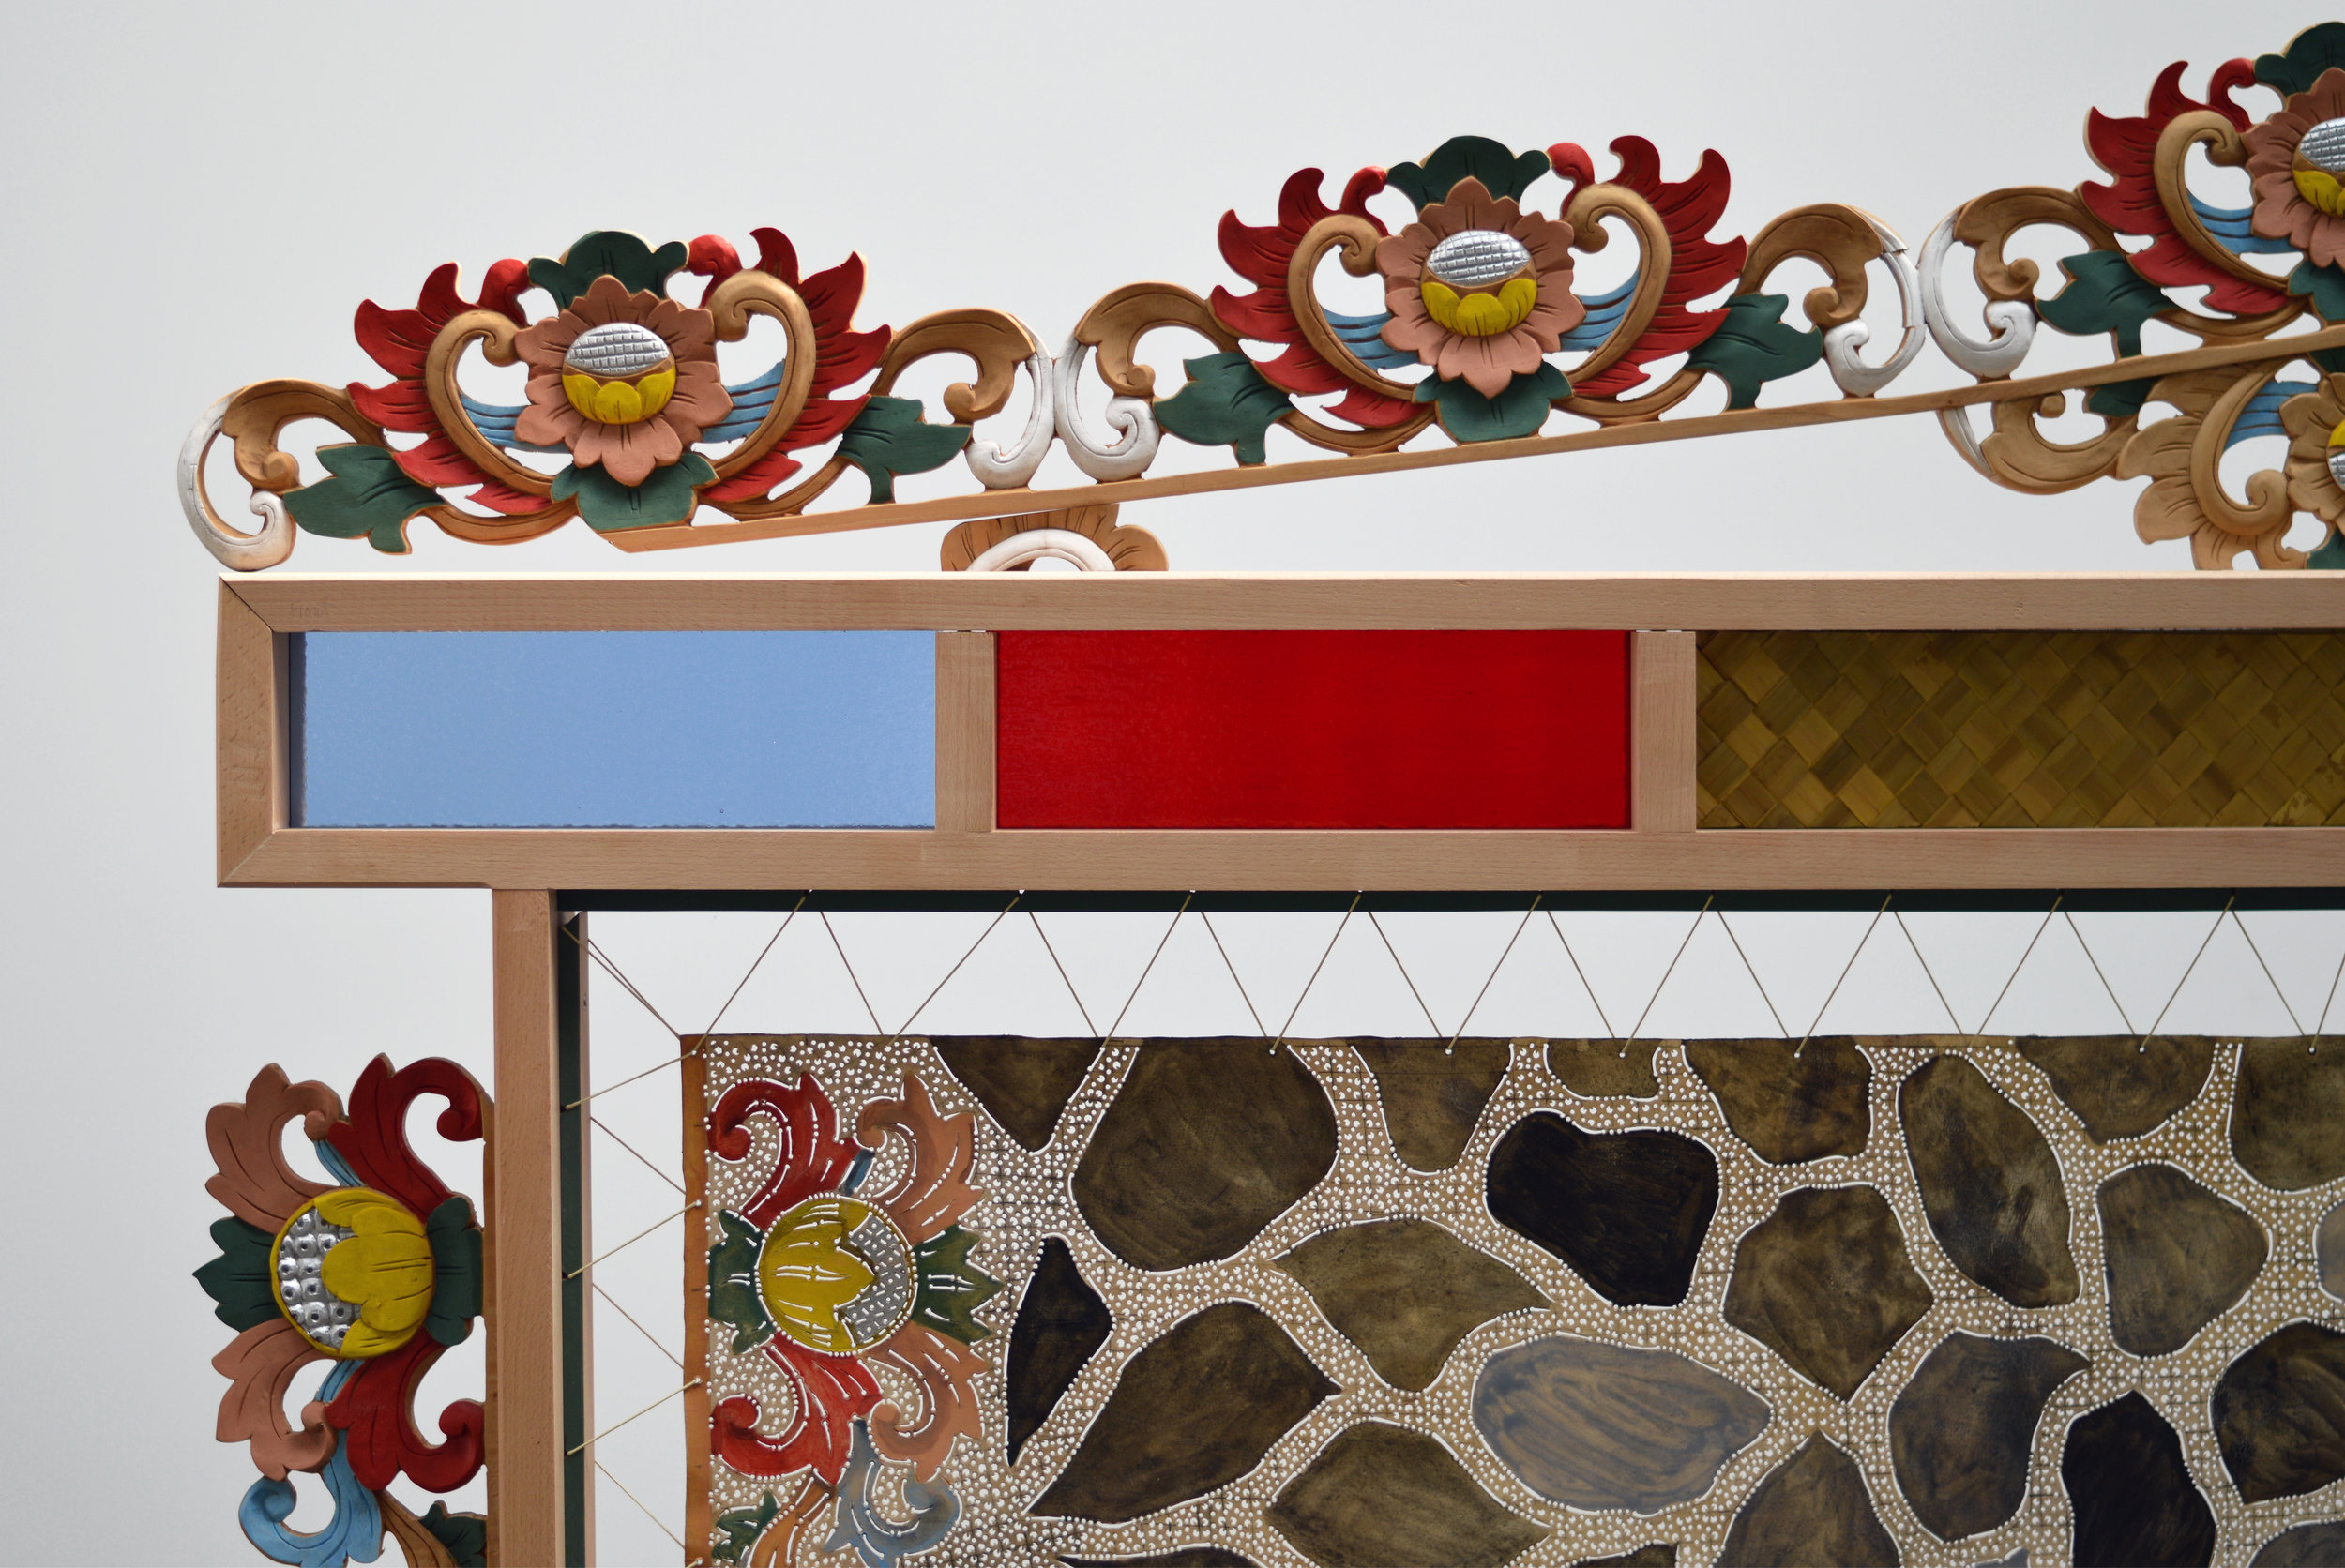 Adam de Boer   Room Screen for Mohawk Street  (detail)     2018 acrylic paint on hand carved hides, acrylic paint on hand carved teak, stained glass, and woven pandan leaf 74 x 96 x 16 inches